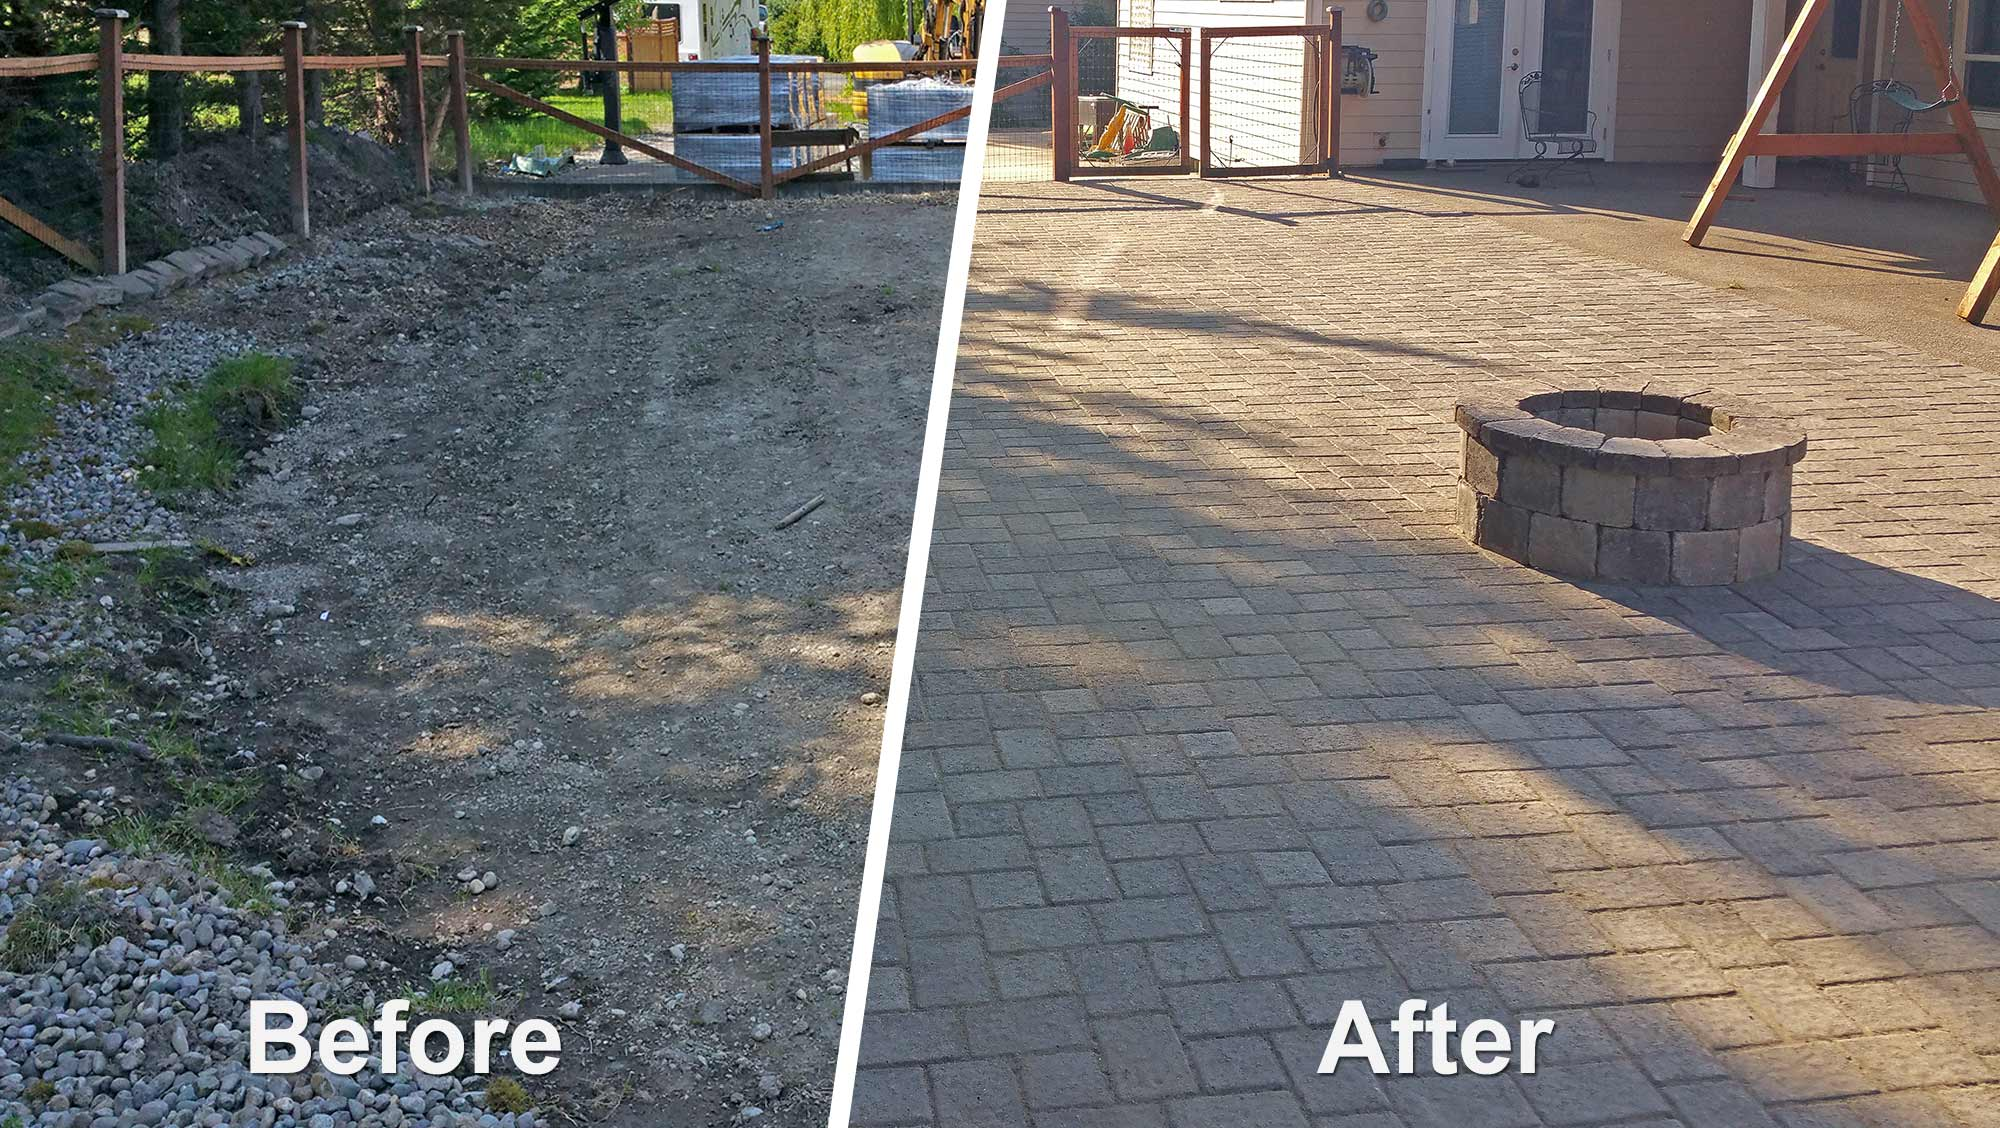 Delicieux Before And After: Paver Patio Extension Before And After: Paver Patio  Extension ...